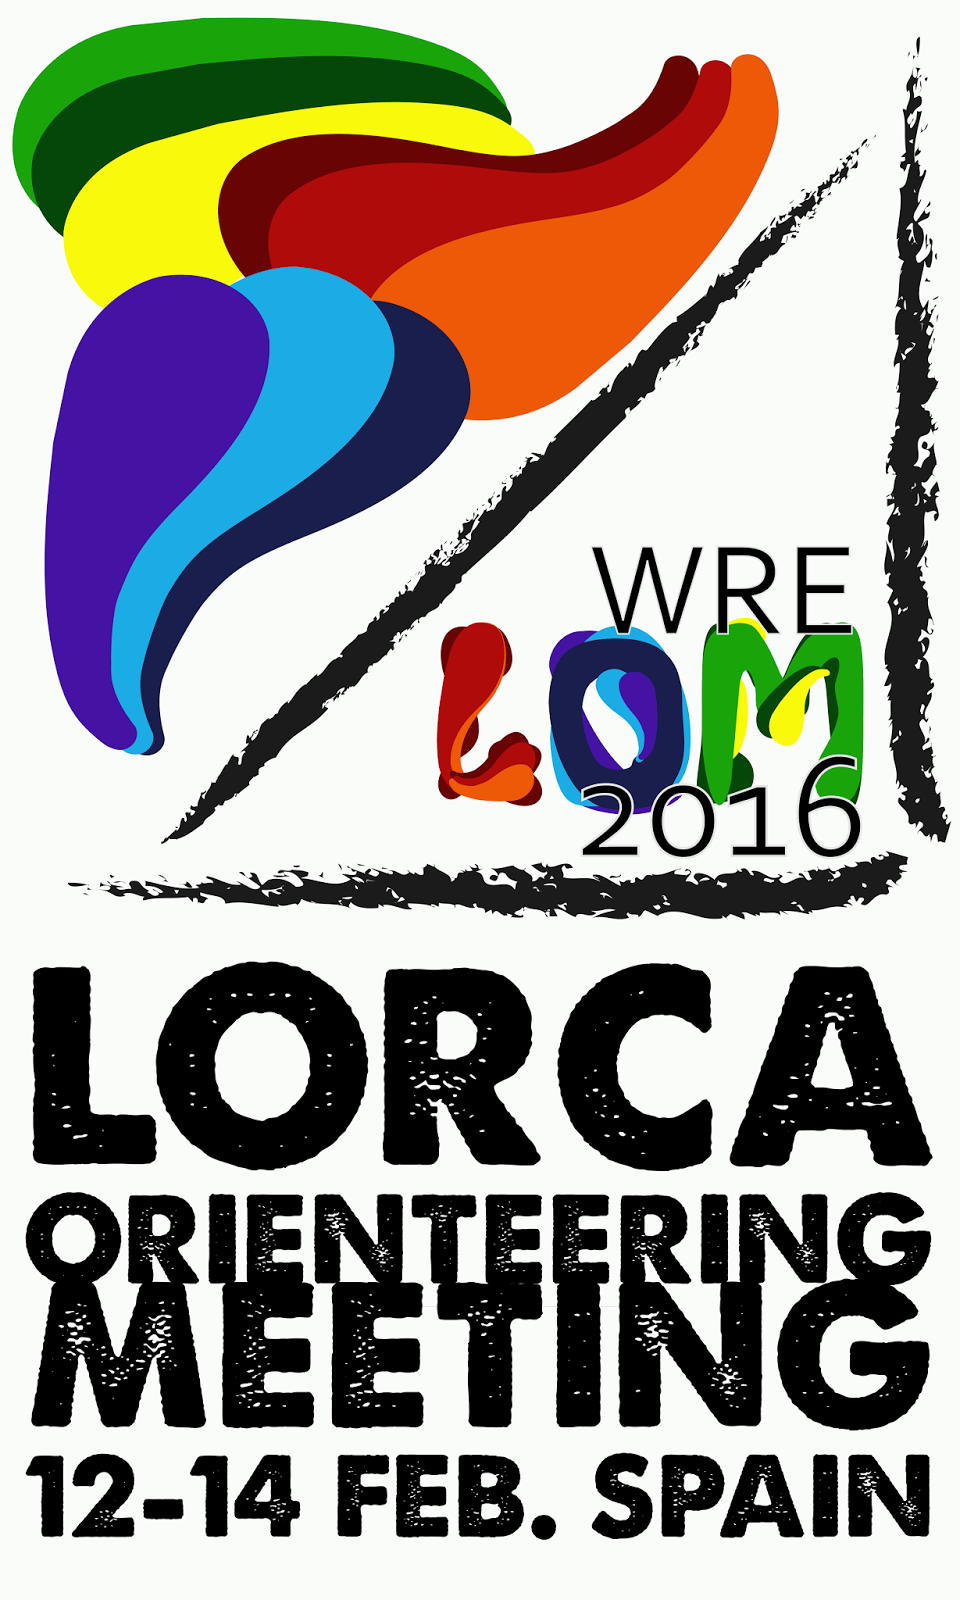 LORCA O-MEETING